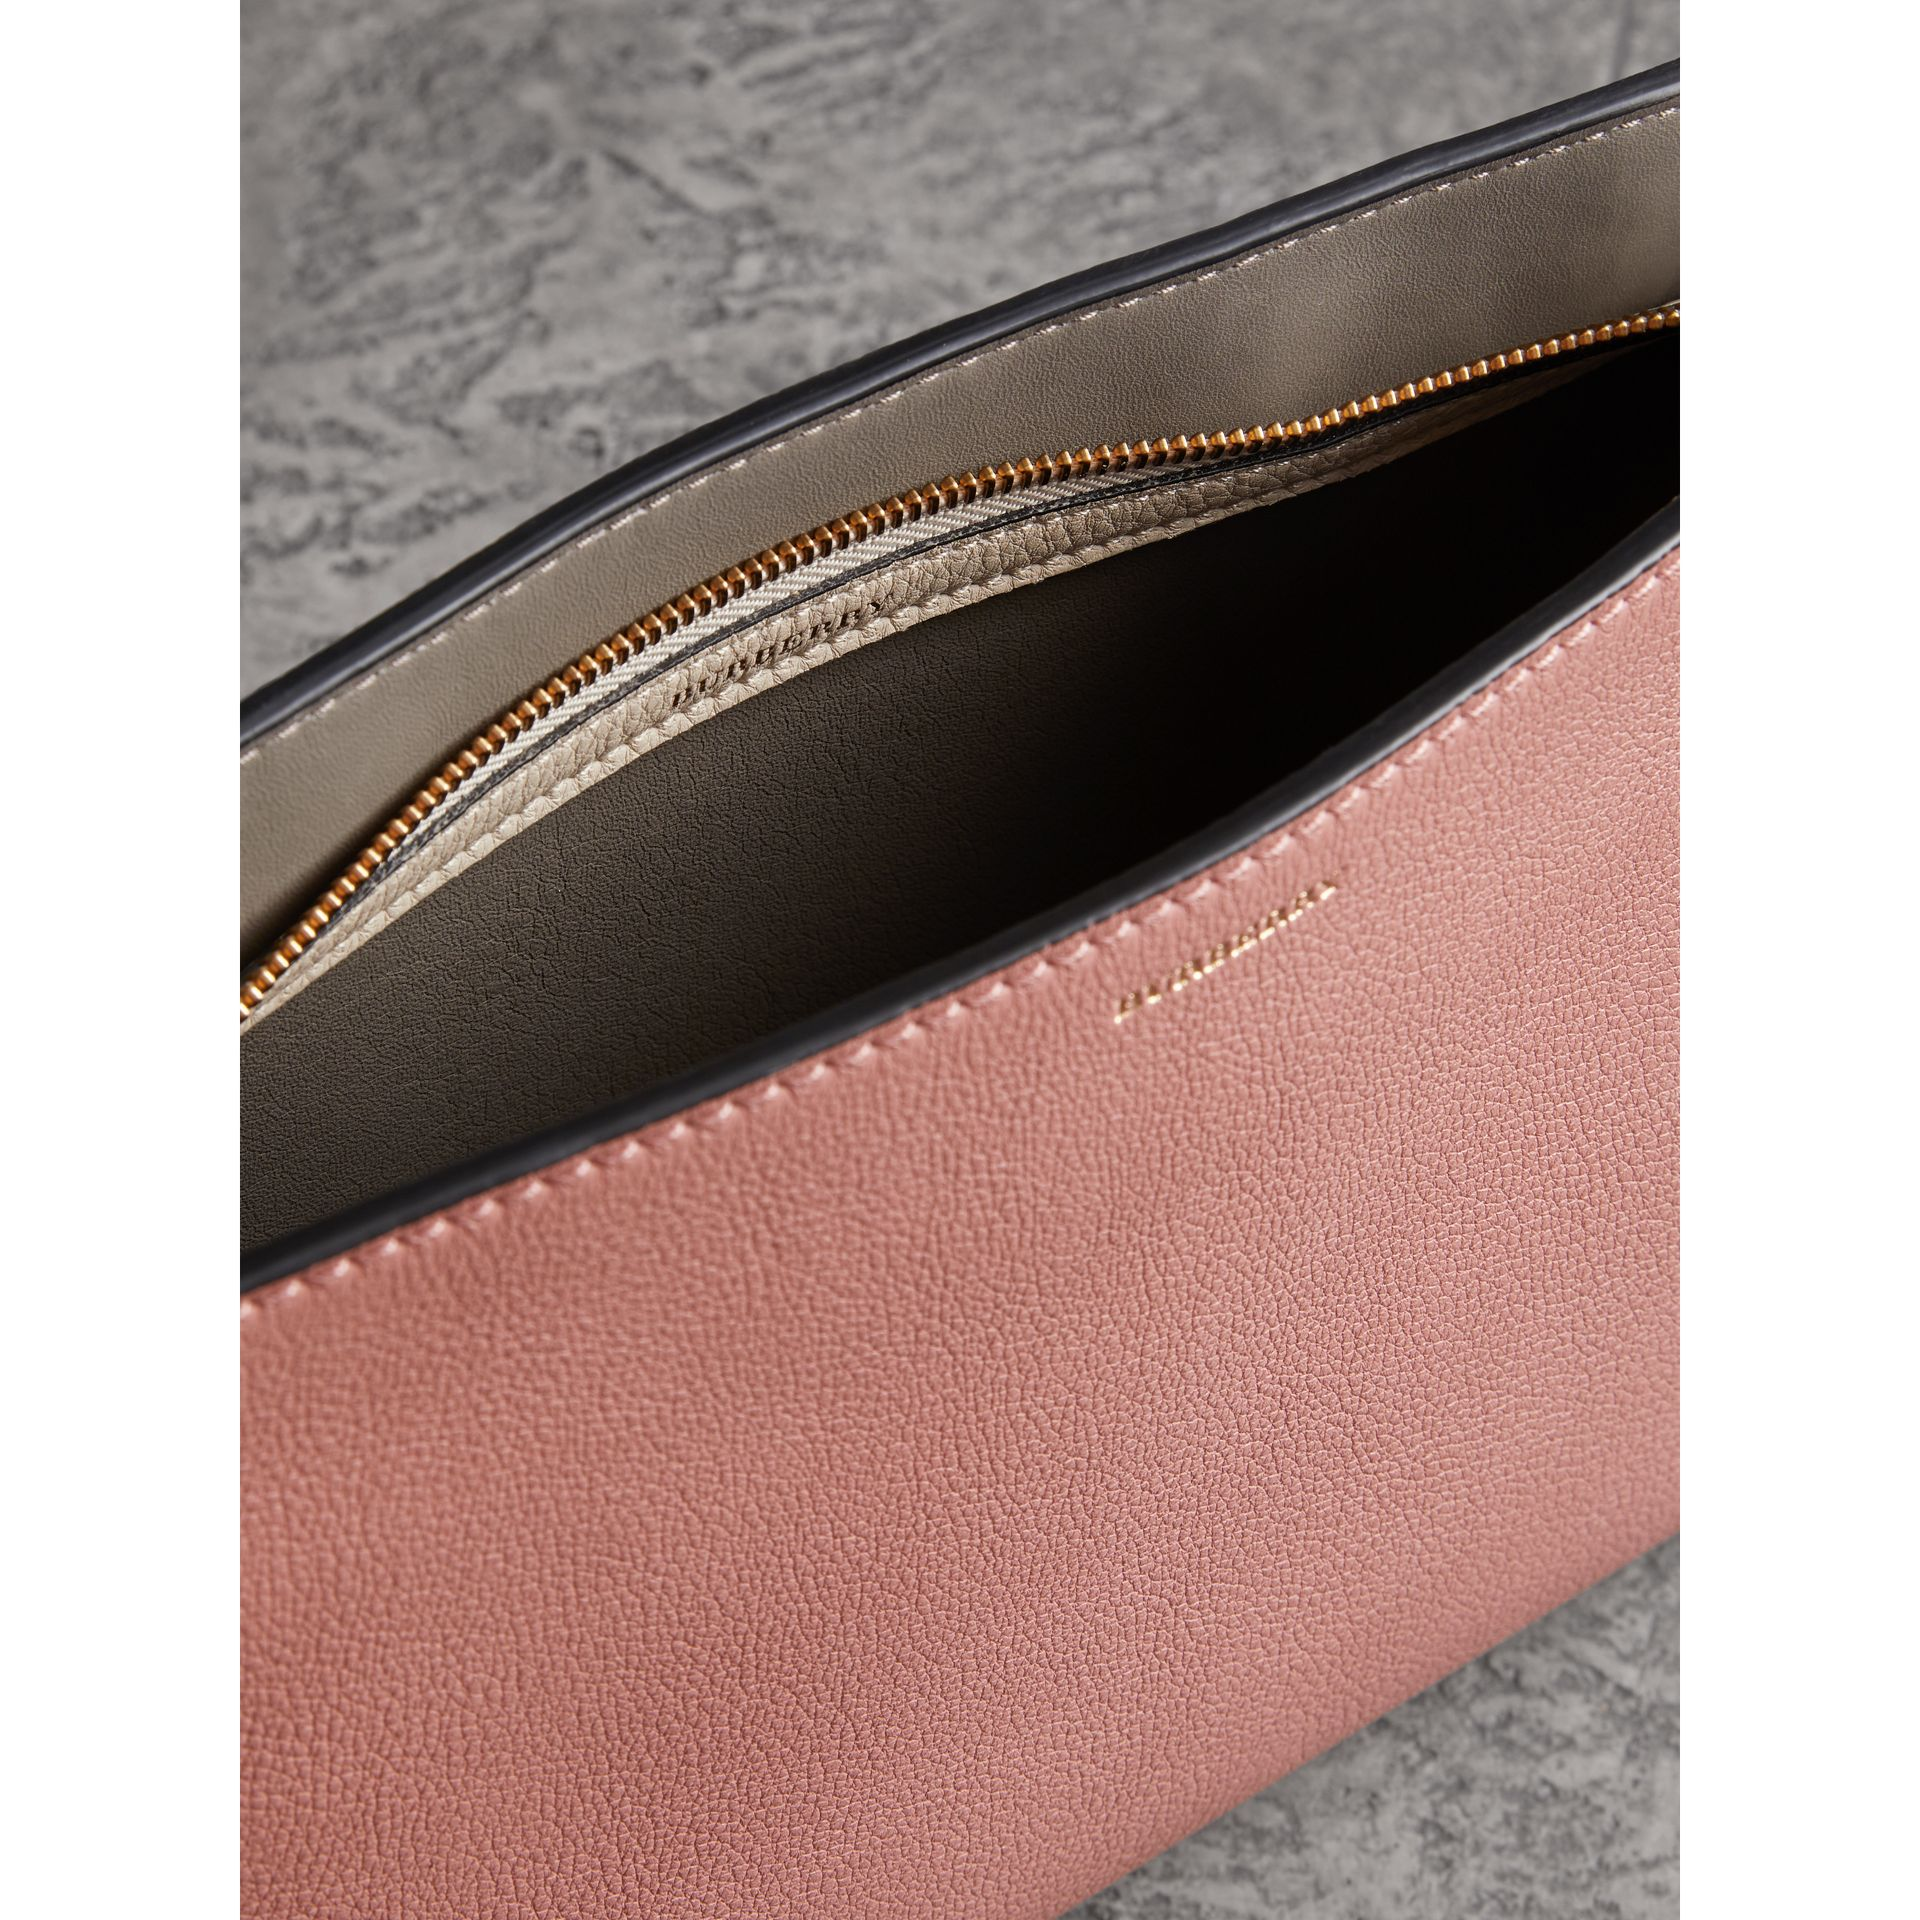 Medium Tri-tone Leather Clutch in Dusty Rose/limestone | Burberry United Kingdom - gallery image 5